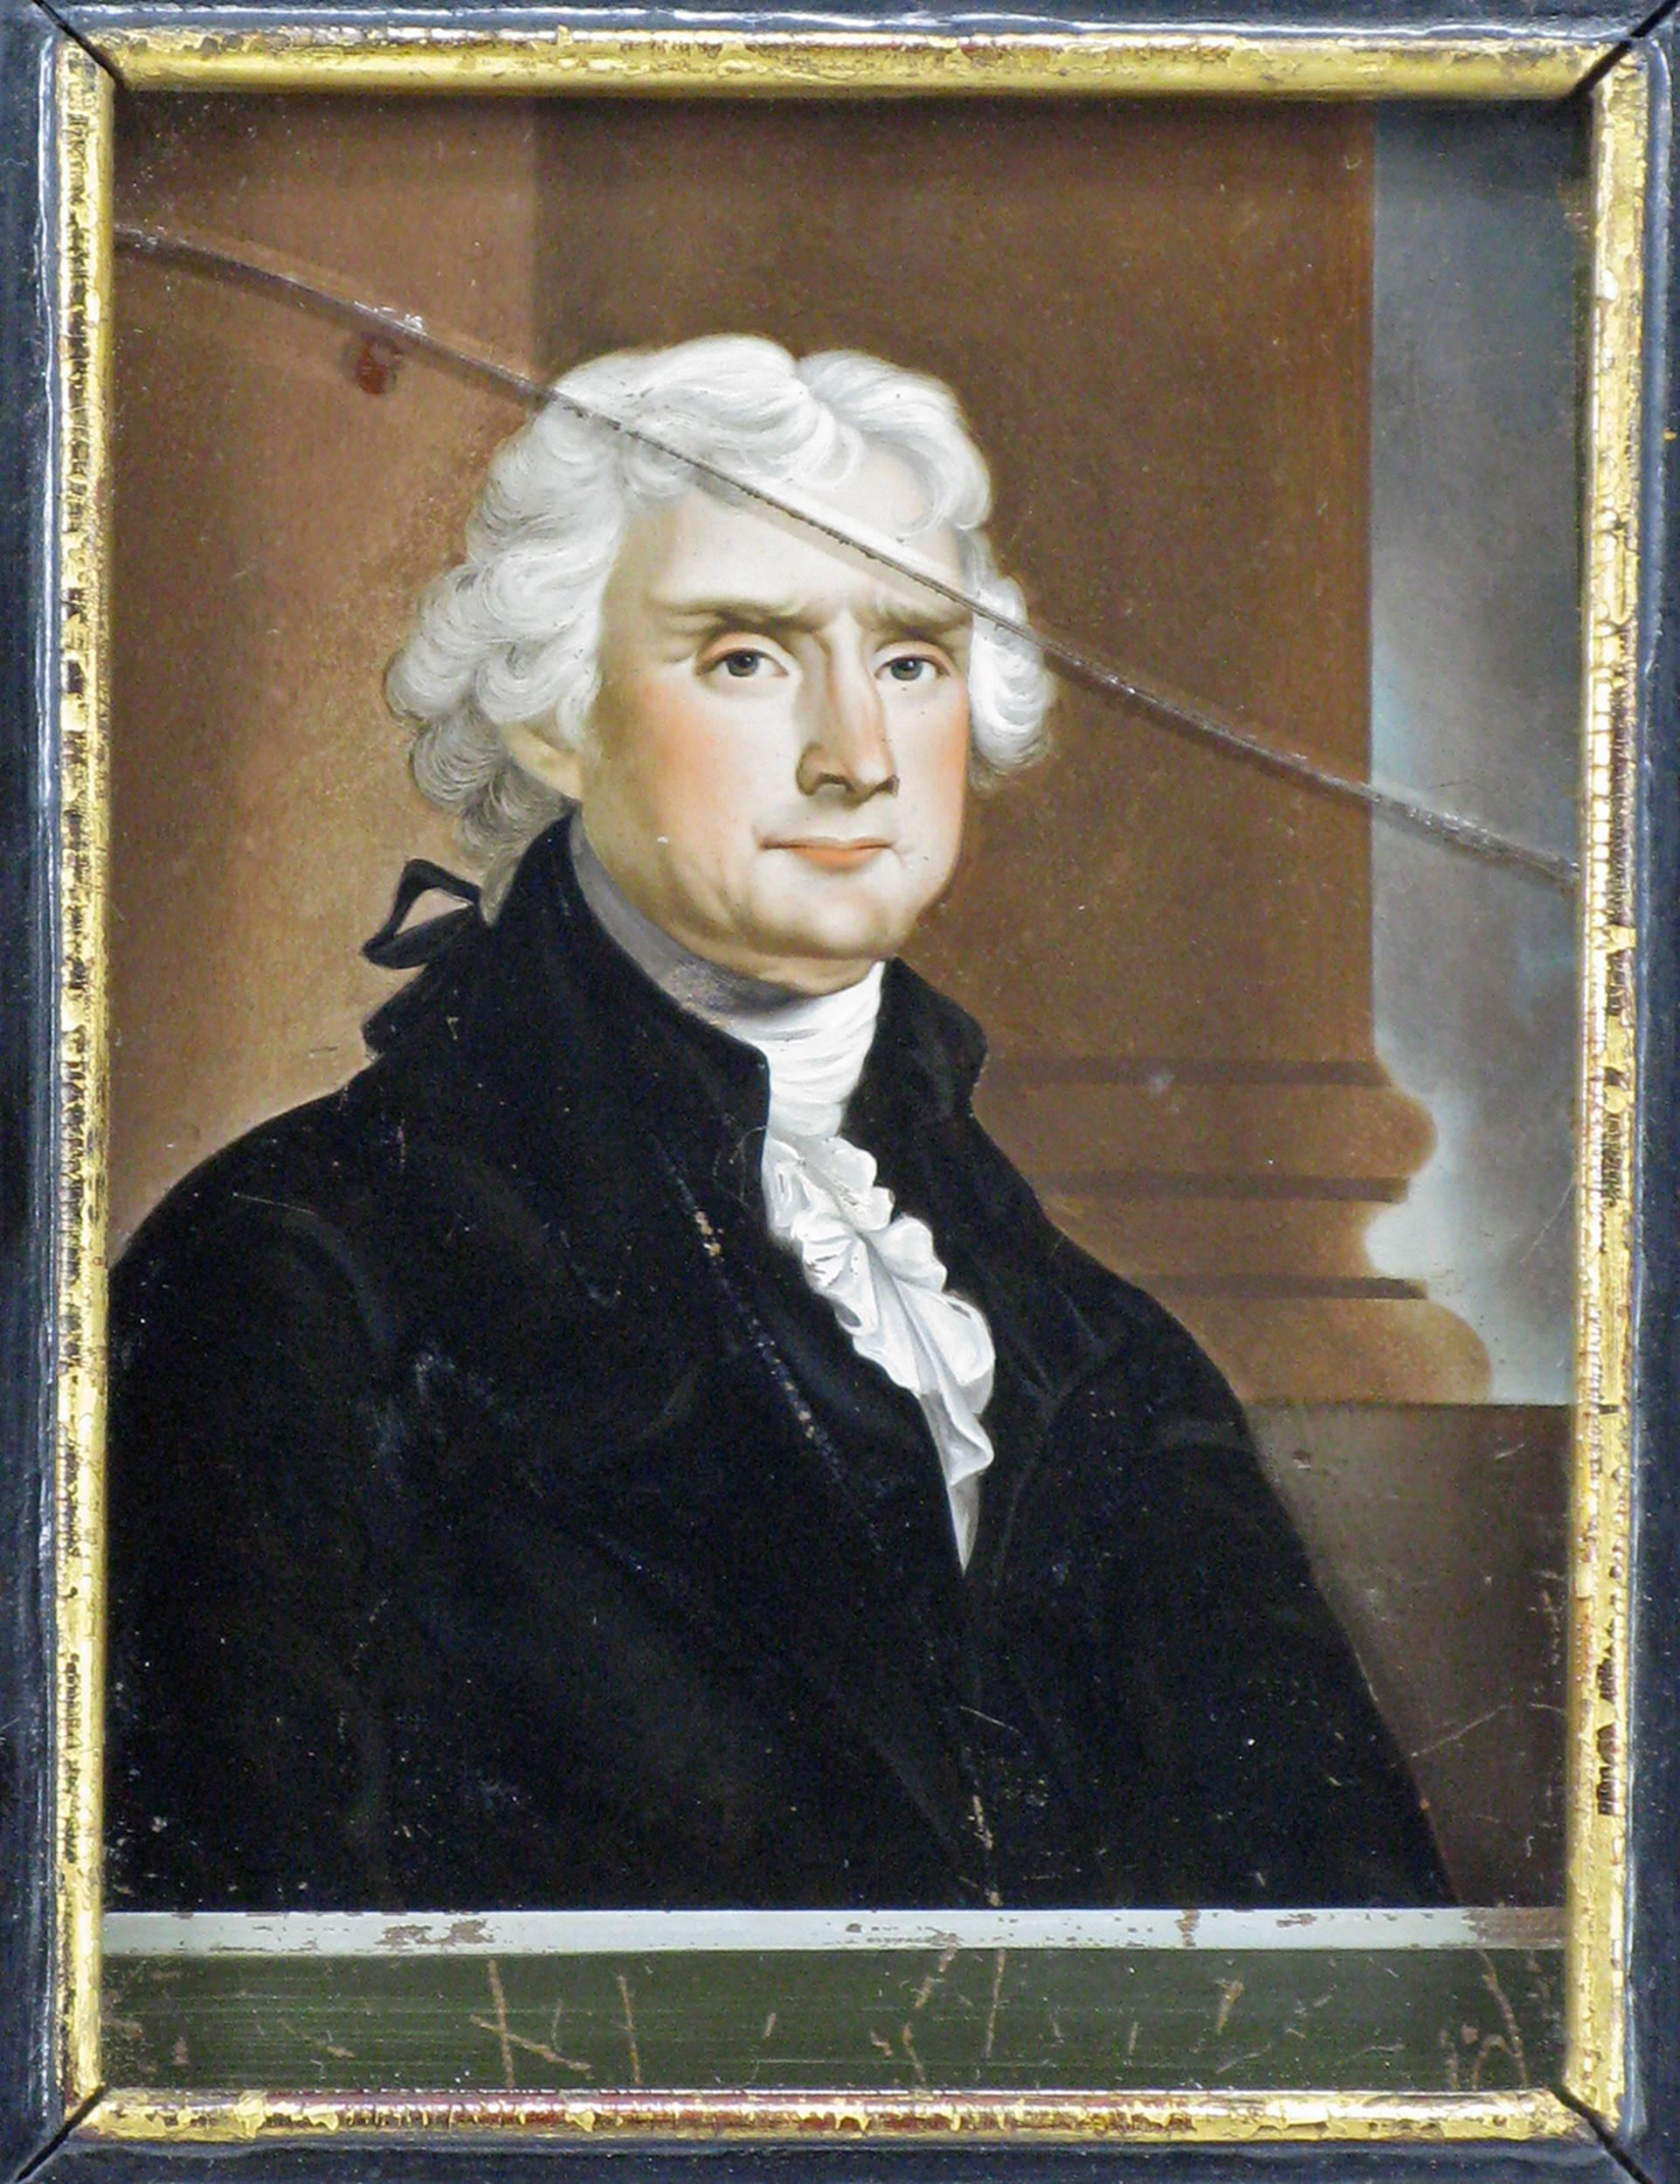 Thomas Jefferson, 18th or early 19th century reverse-painted portrait